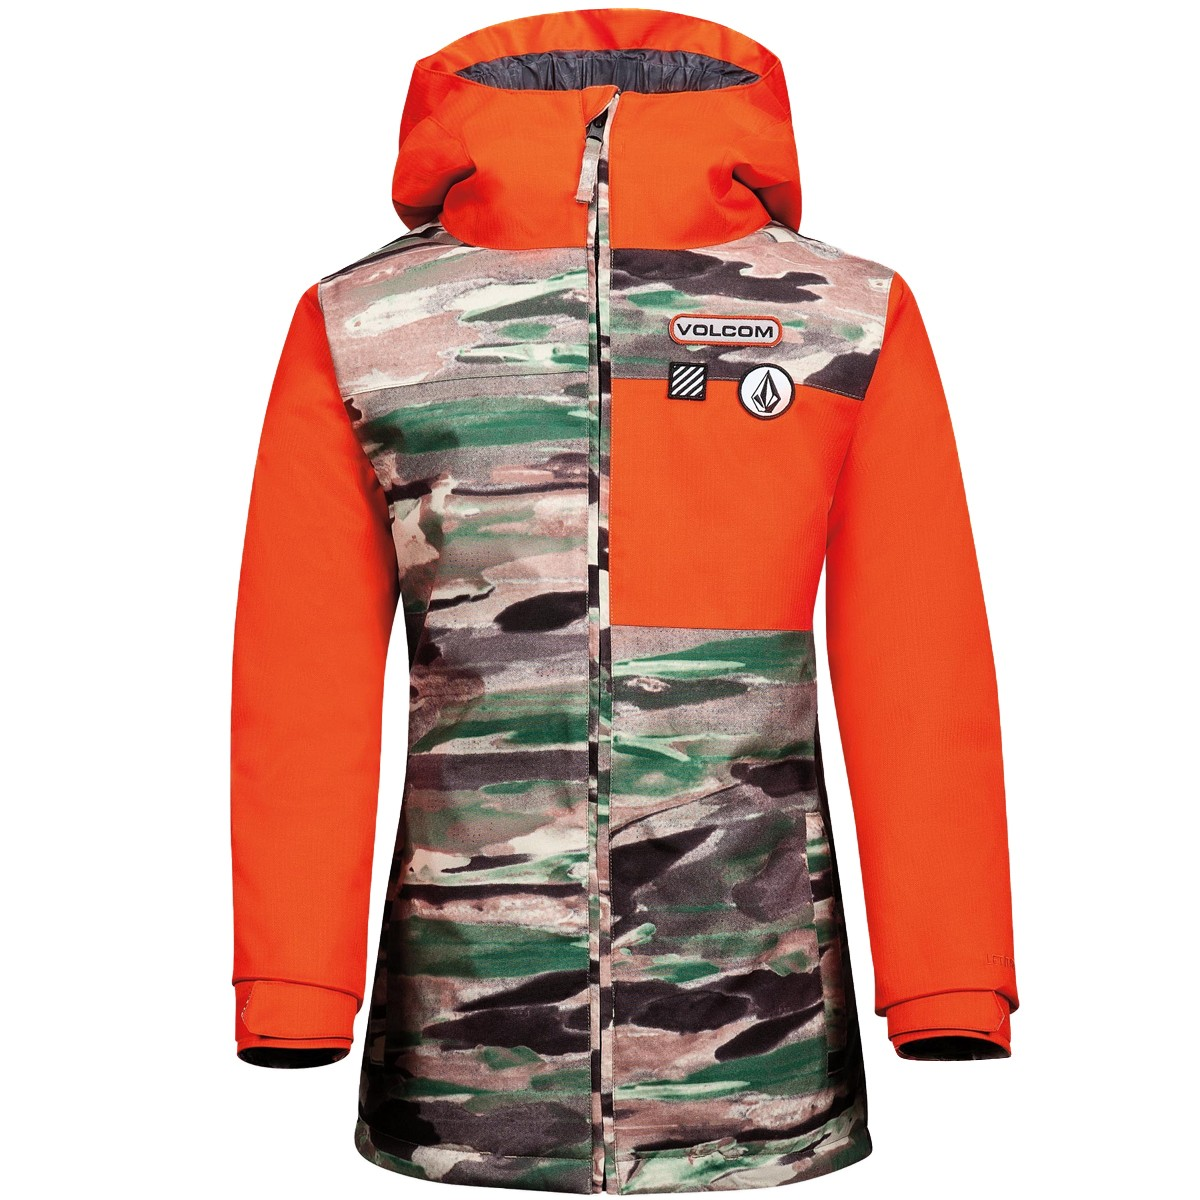 Volcom Aftermath Insulated Youth Jacket 2015 - Camo